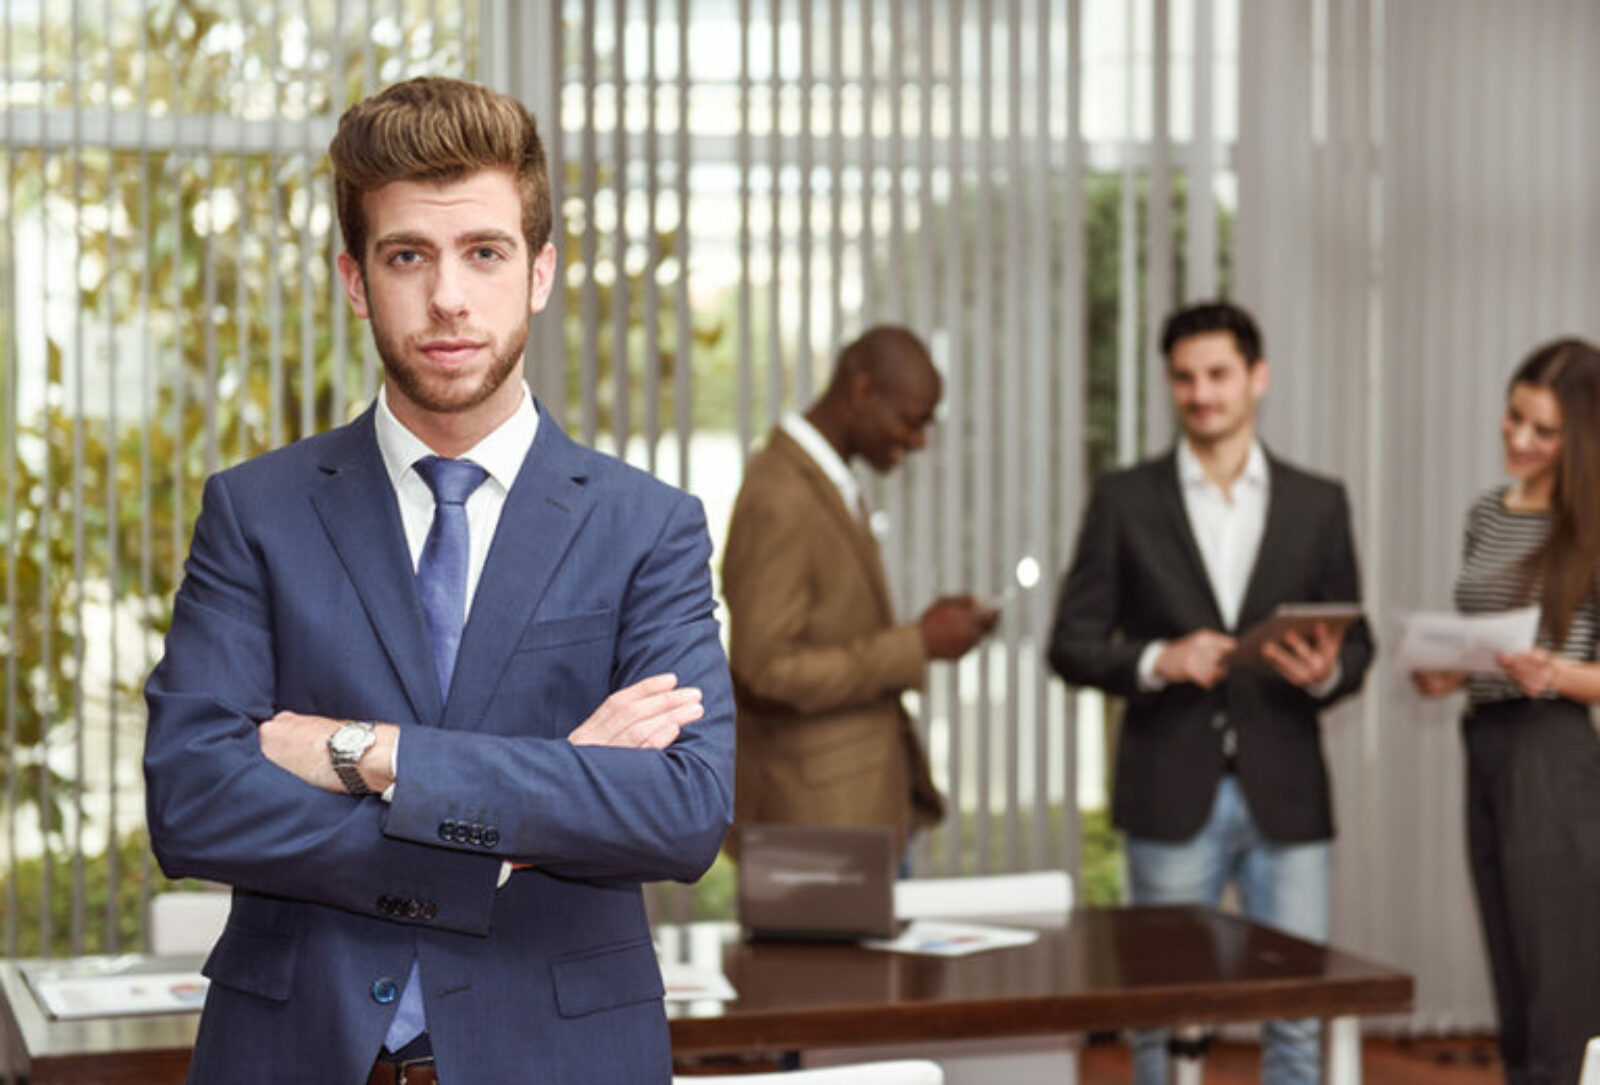 How to grow excellent leadership skills?